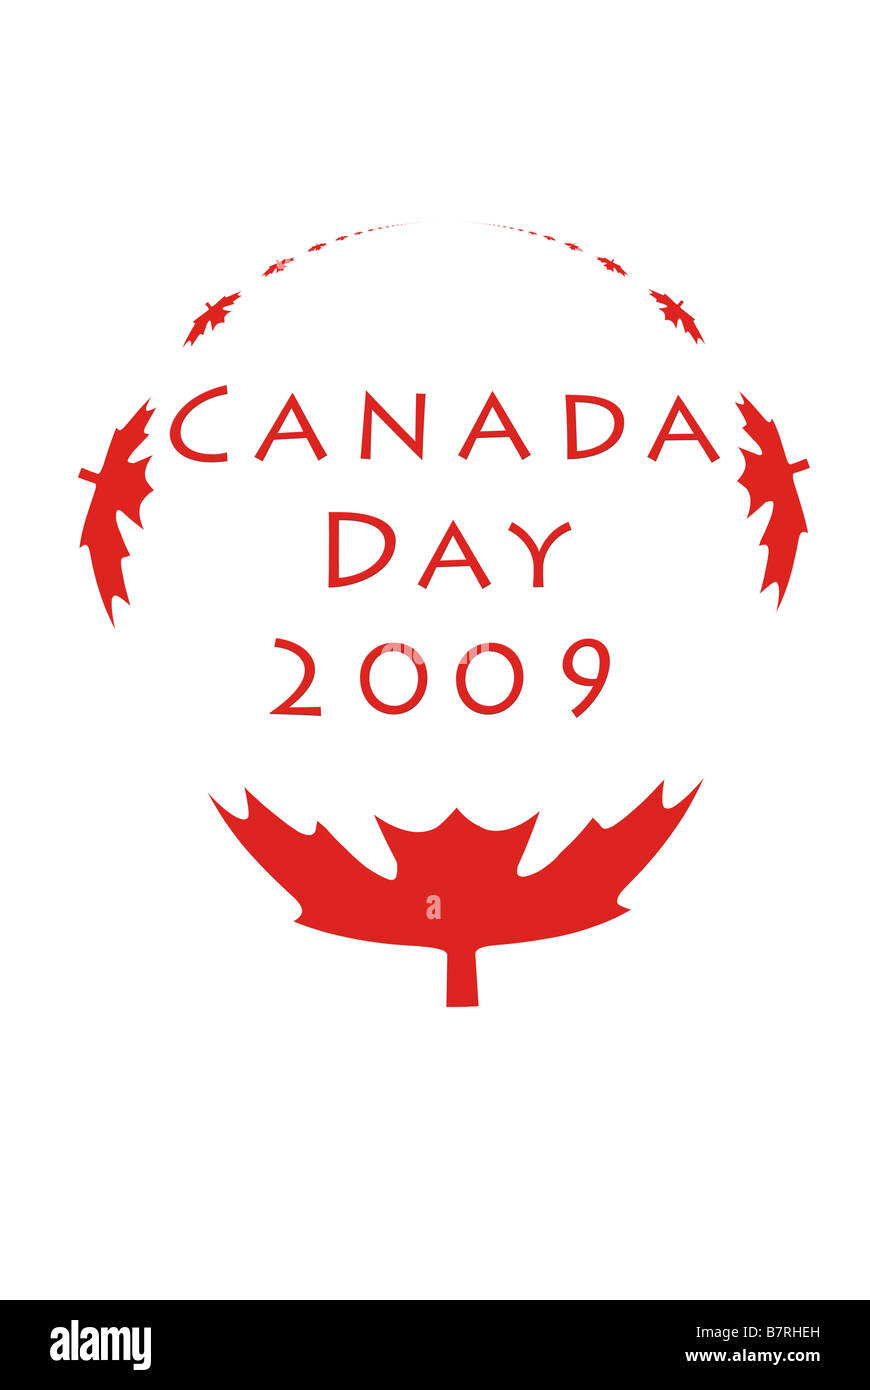 Canada Day 2009 graphic with maple leaves in circle - Stock Image